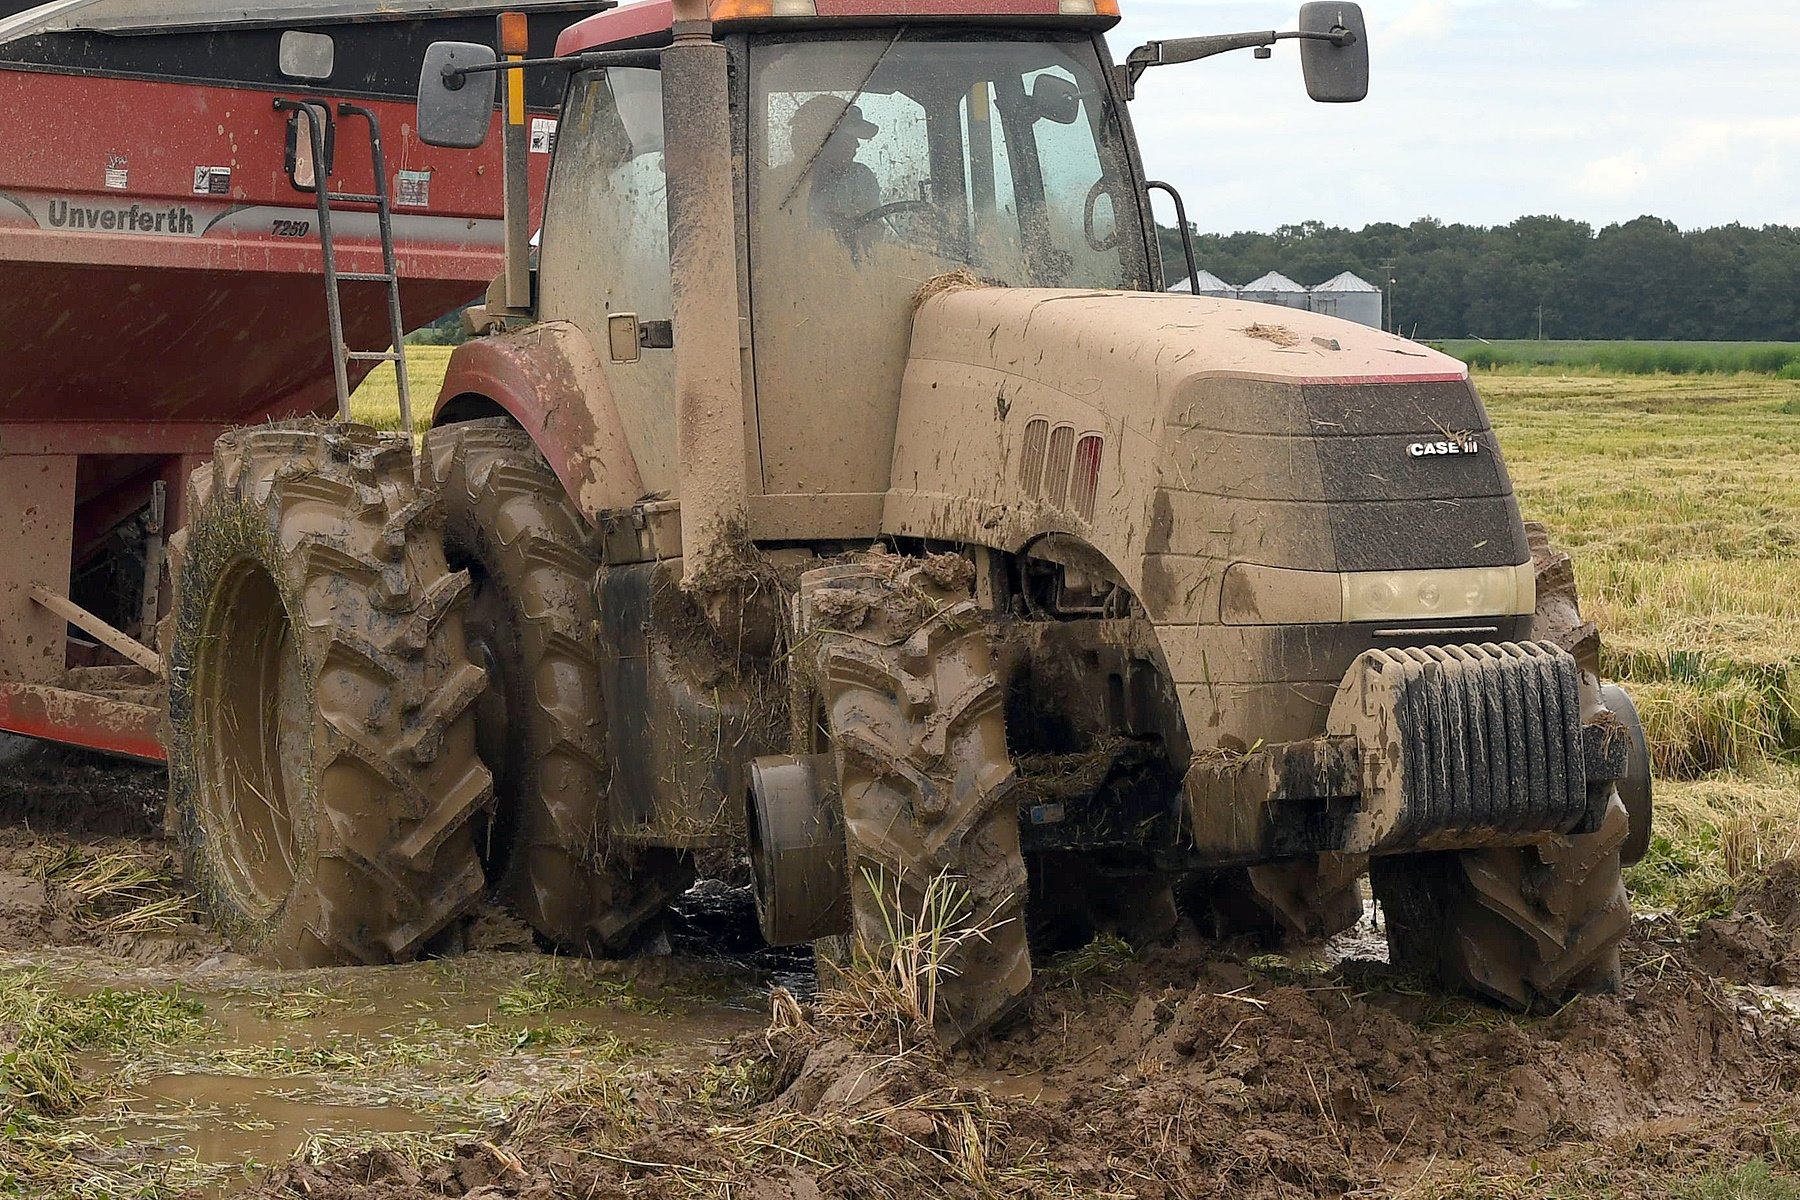 Working with Farmers to Grow Great Tires